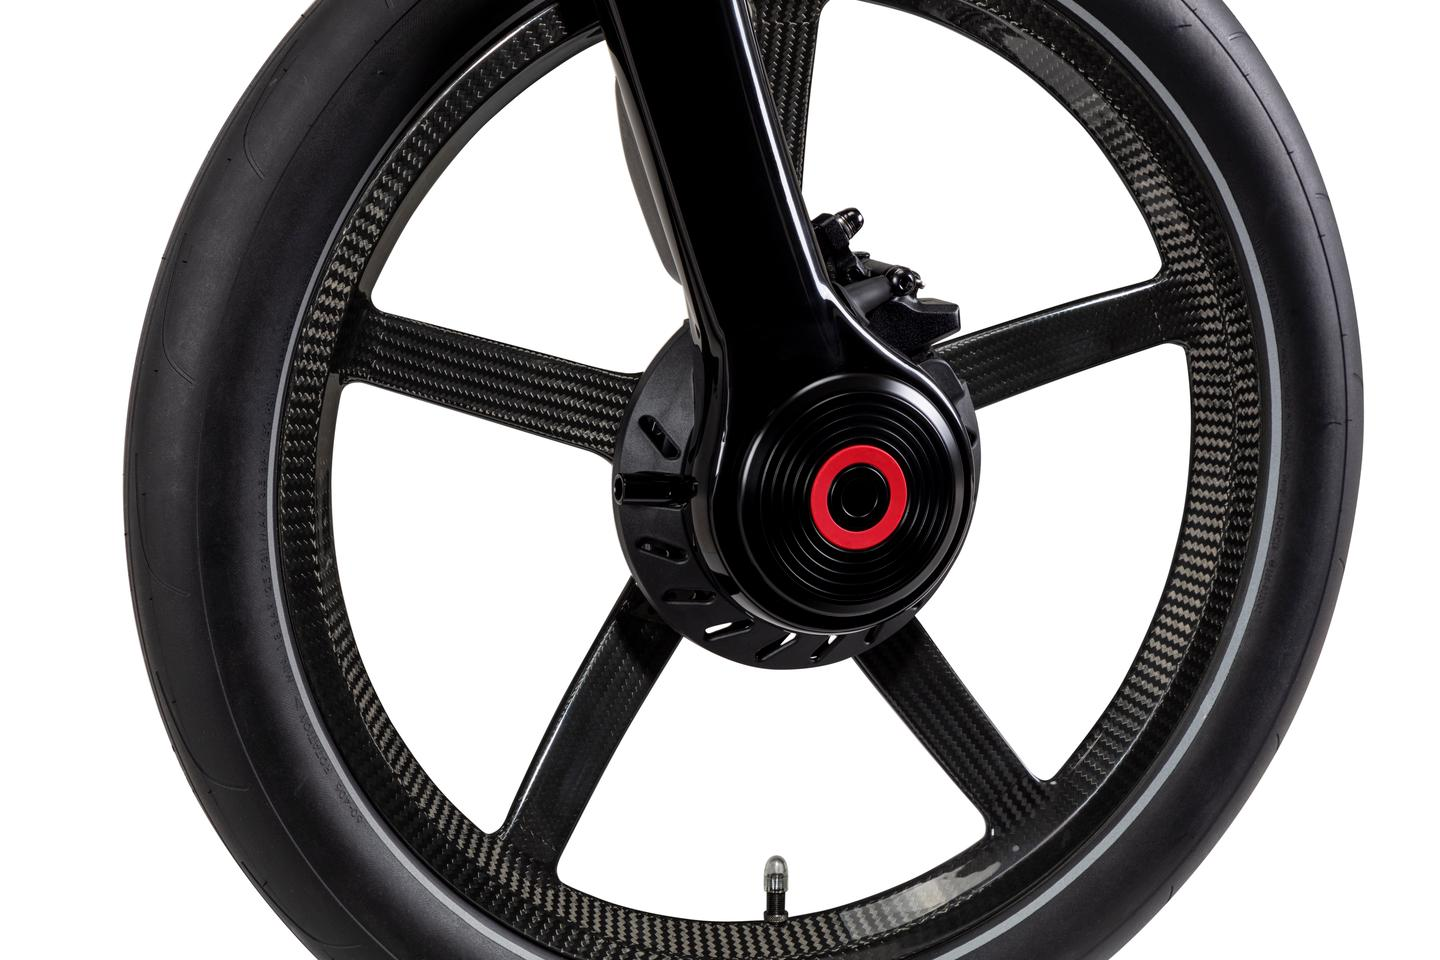 The Gocycle G4 ebikes utilize the more powerful G4drive motor